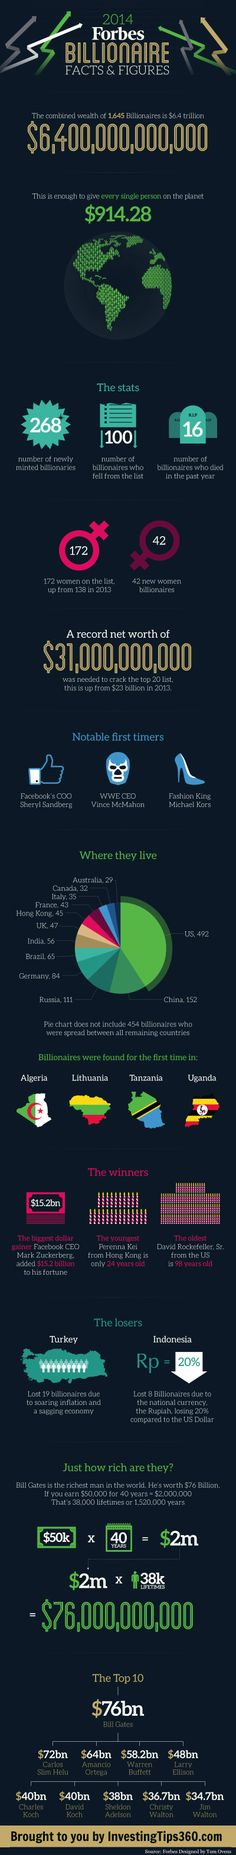 2014 Forbes Billionaire Facts and Figures   #infographic #Billionaire #Wealth #Rich